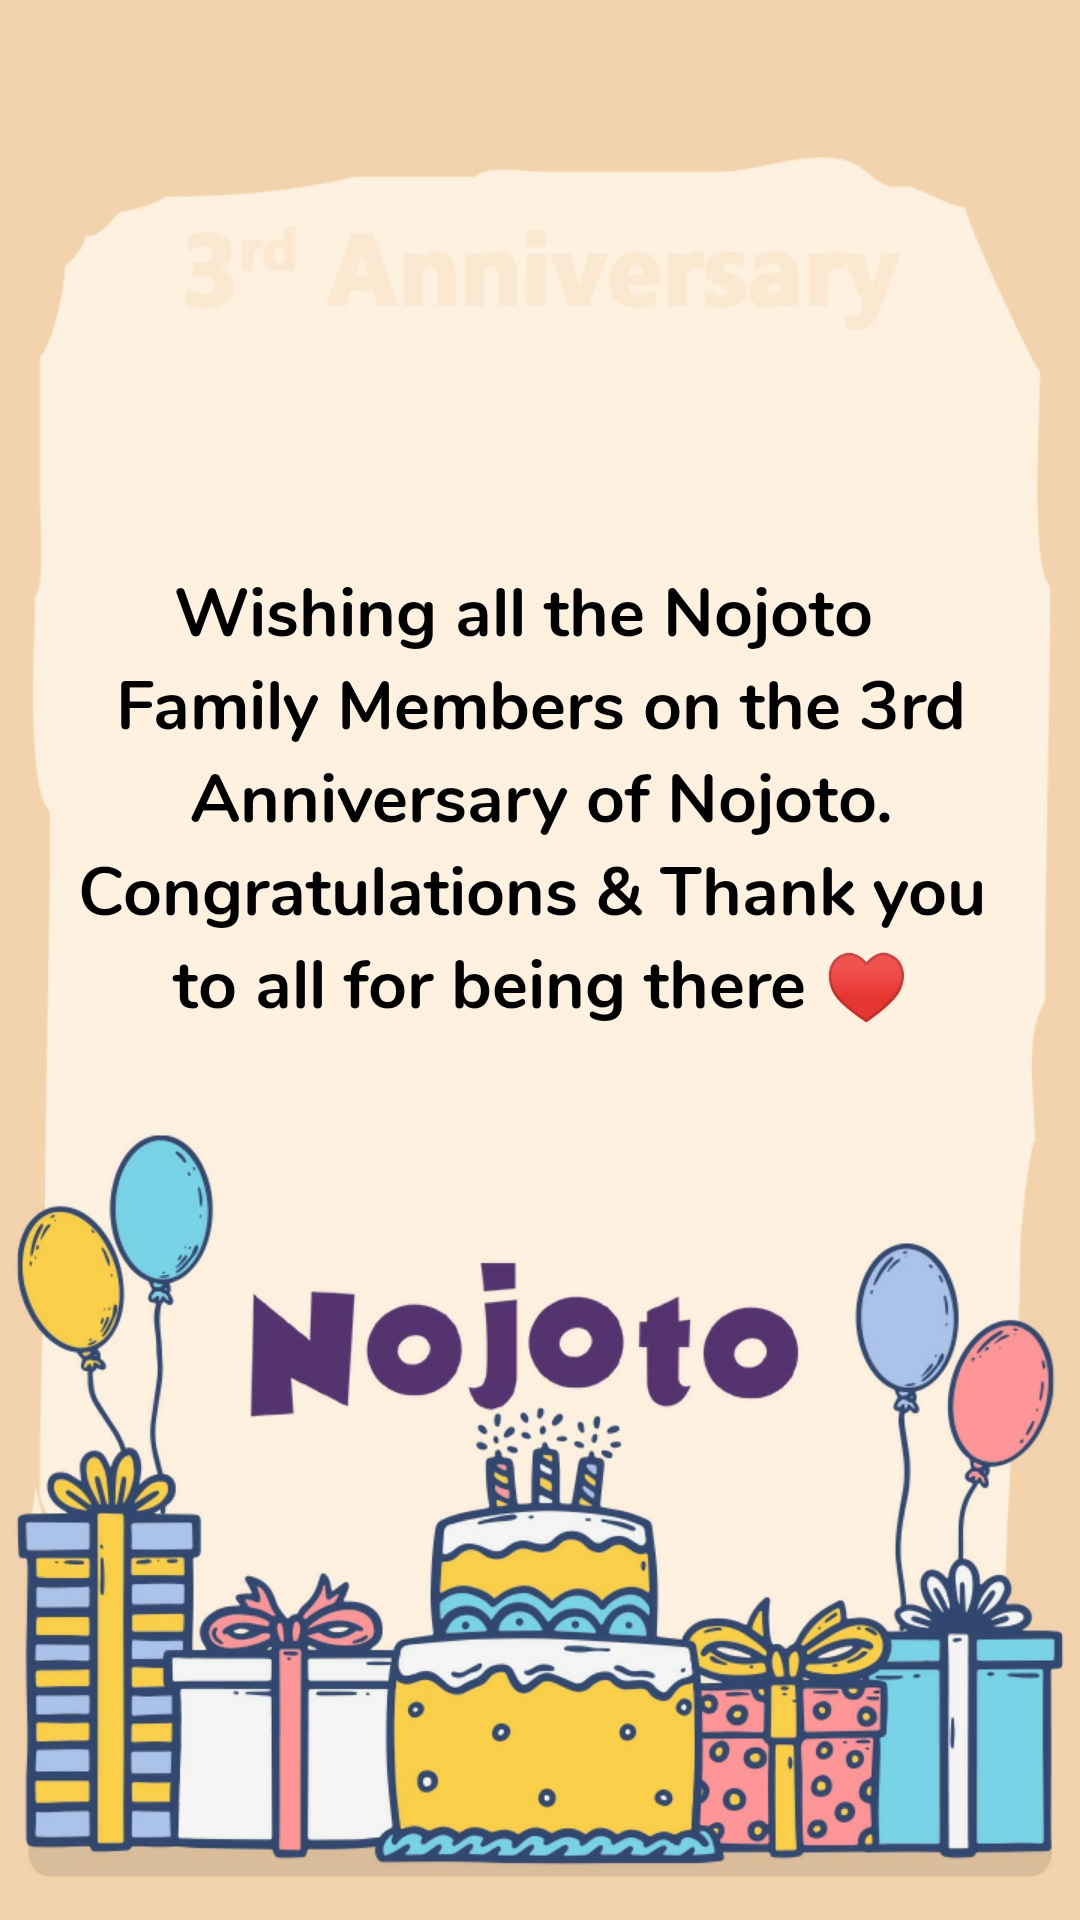 Wishing all the Nojoto   Family Members on the 3rd Anniversary of Nojoto. Congratulations & Thank you  to all for being there ♥️